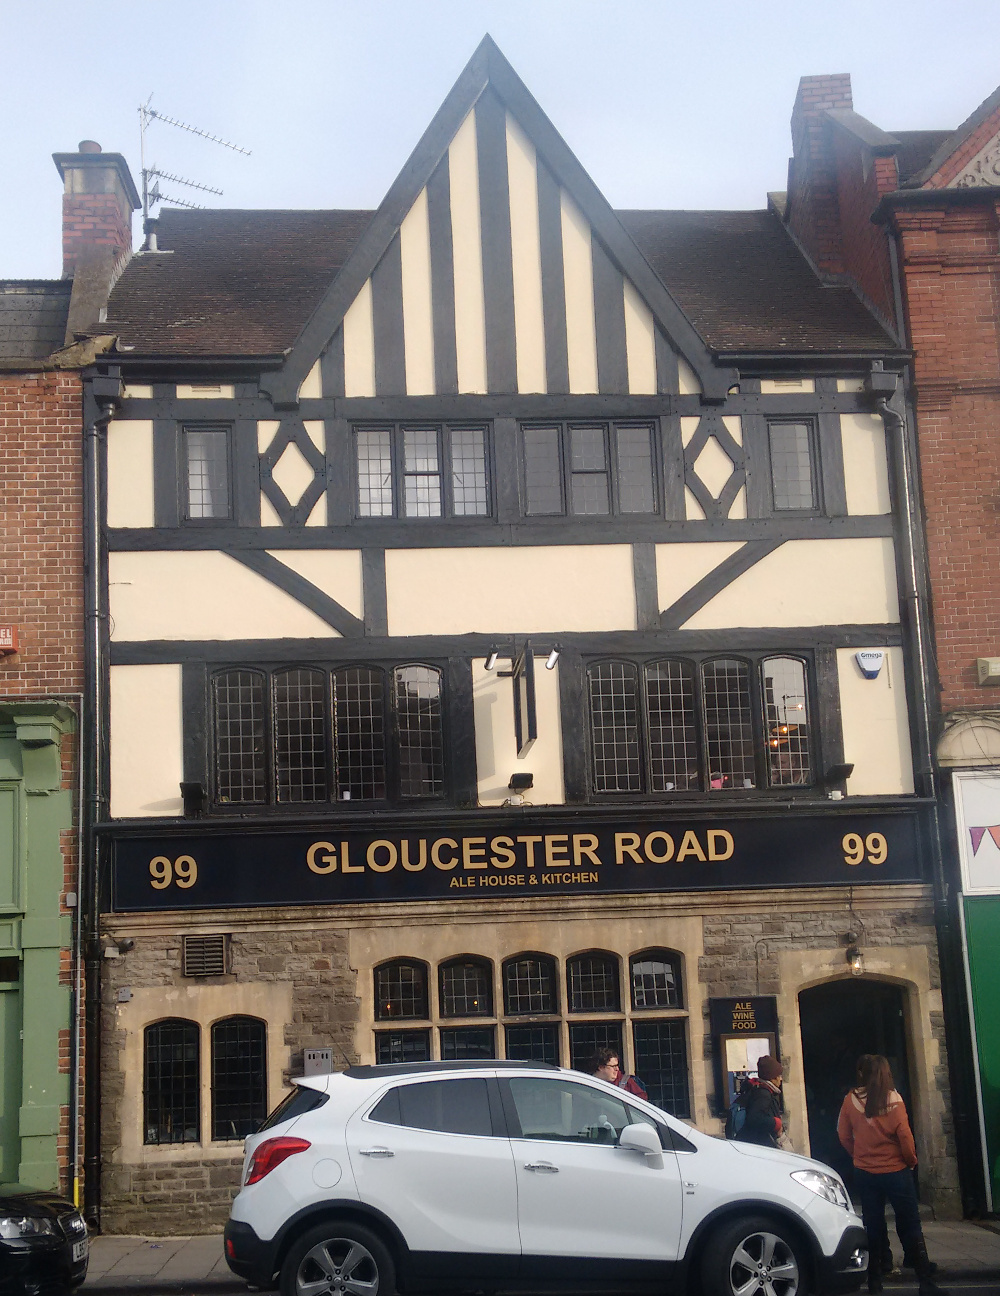 99, Gloucester Road dated 2016-03-01 by chris